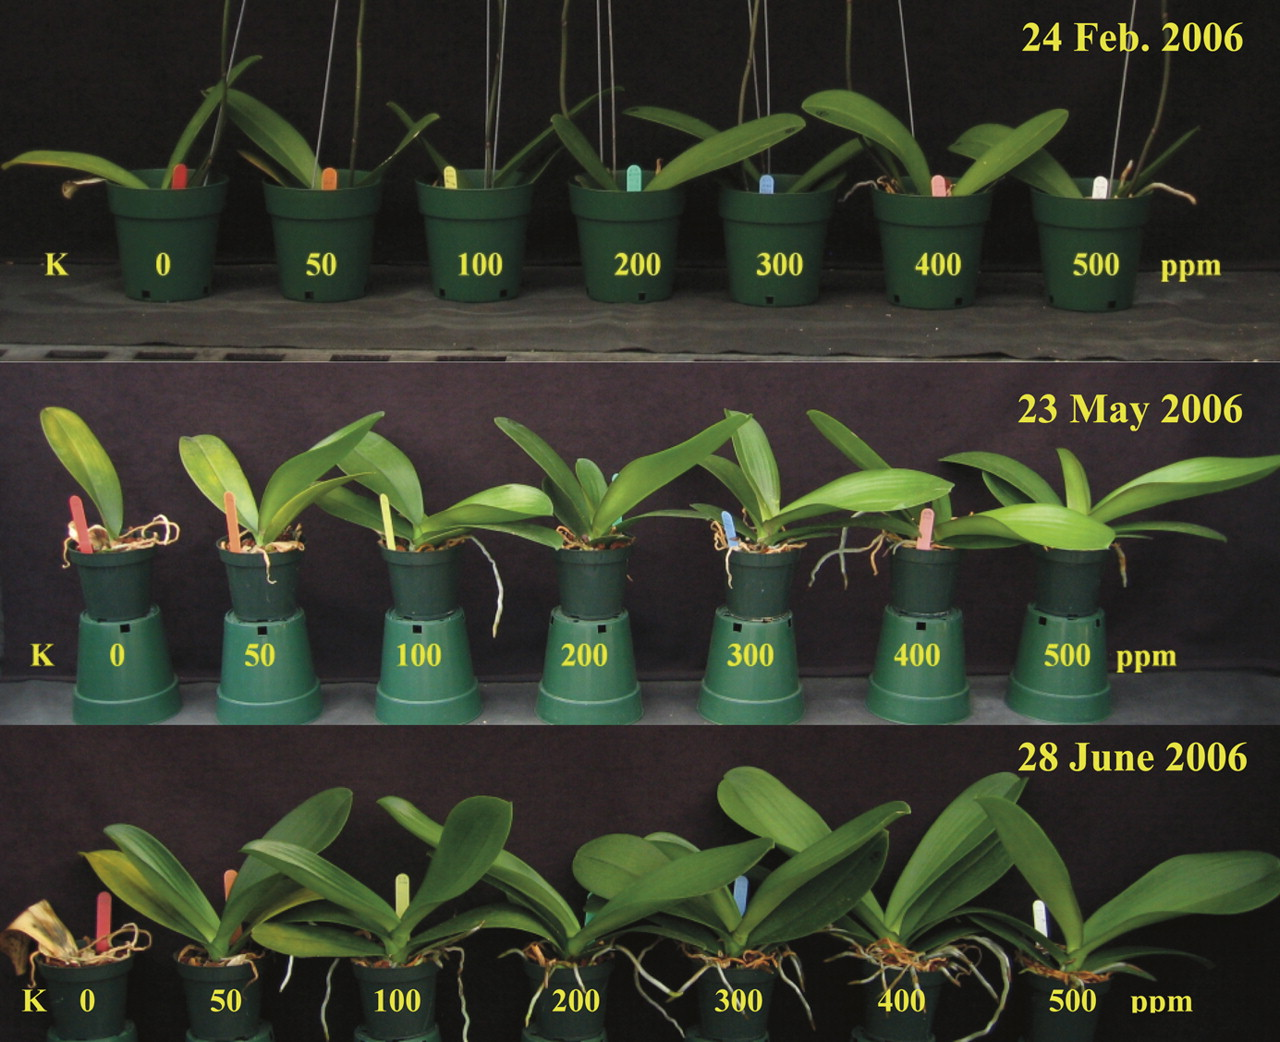 Potassium Nutrition Affects Phalaenopsis Growth and